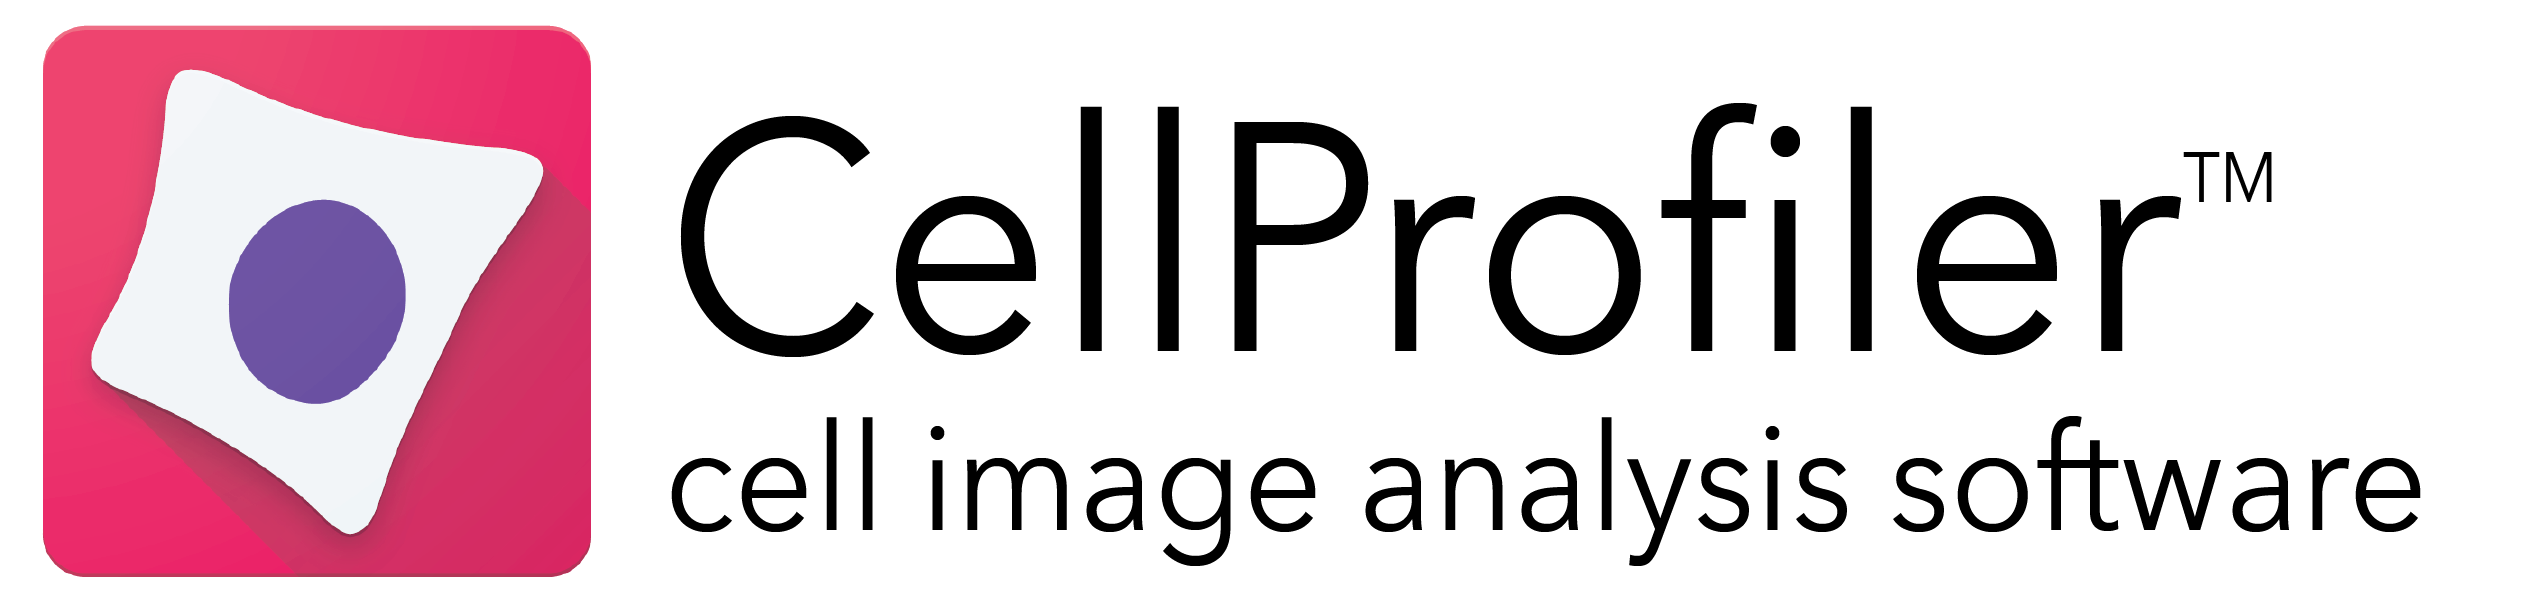 CellProfiler